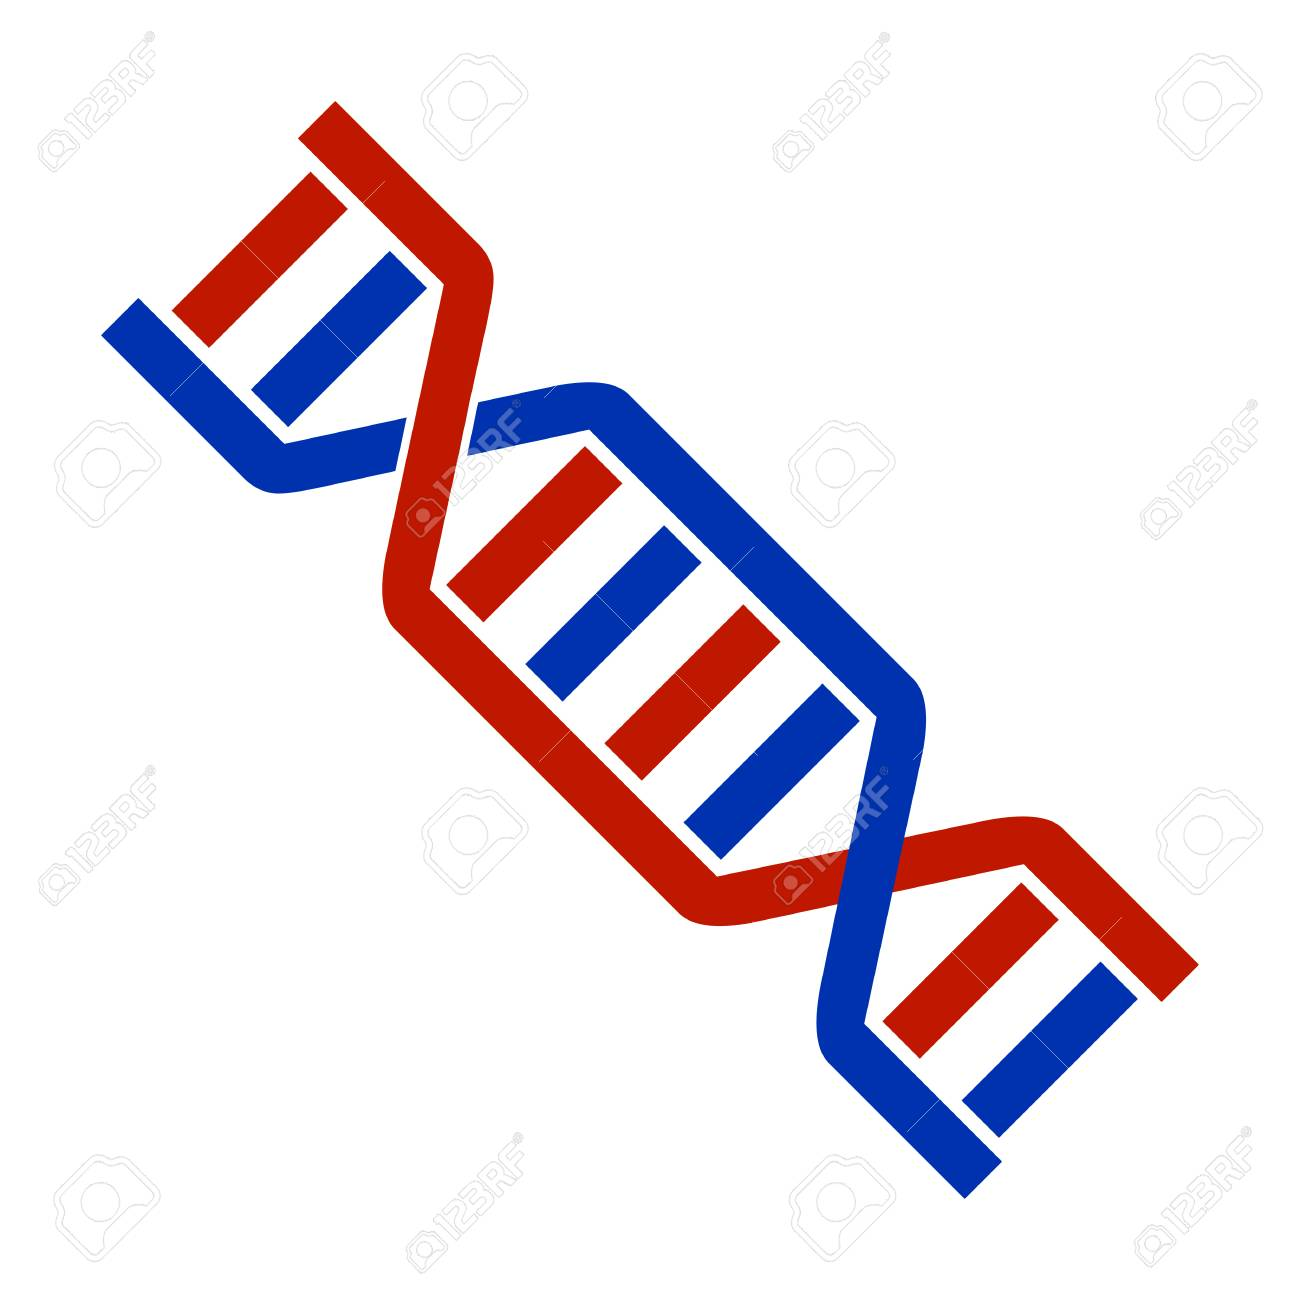 DNA Icon Symbol Design. Flat Vector illustration isolated on...